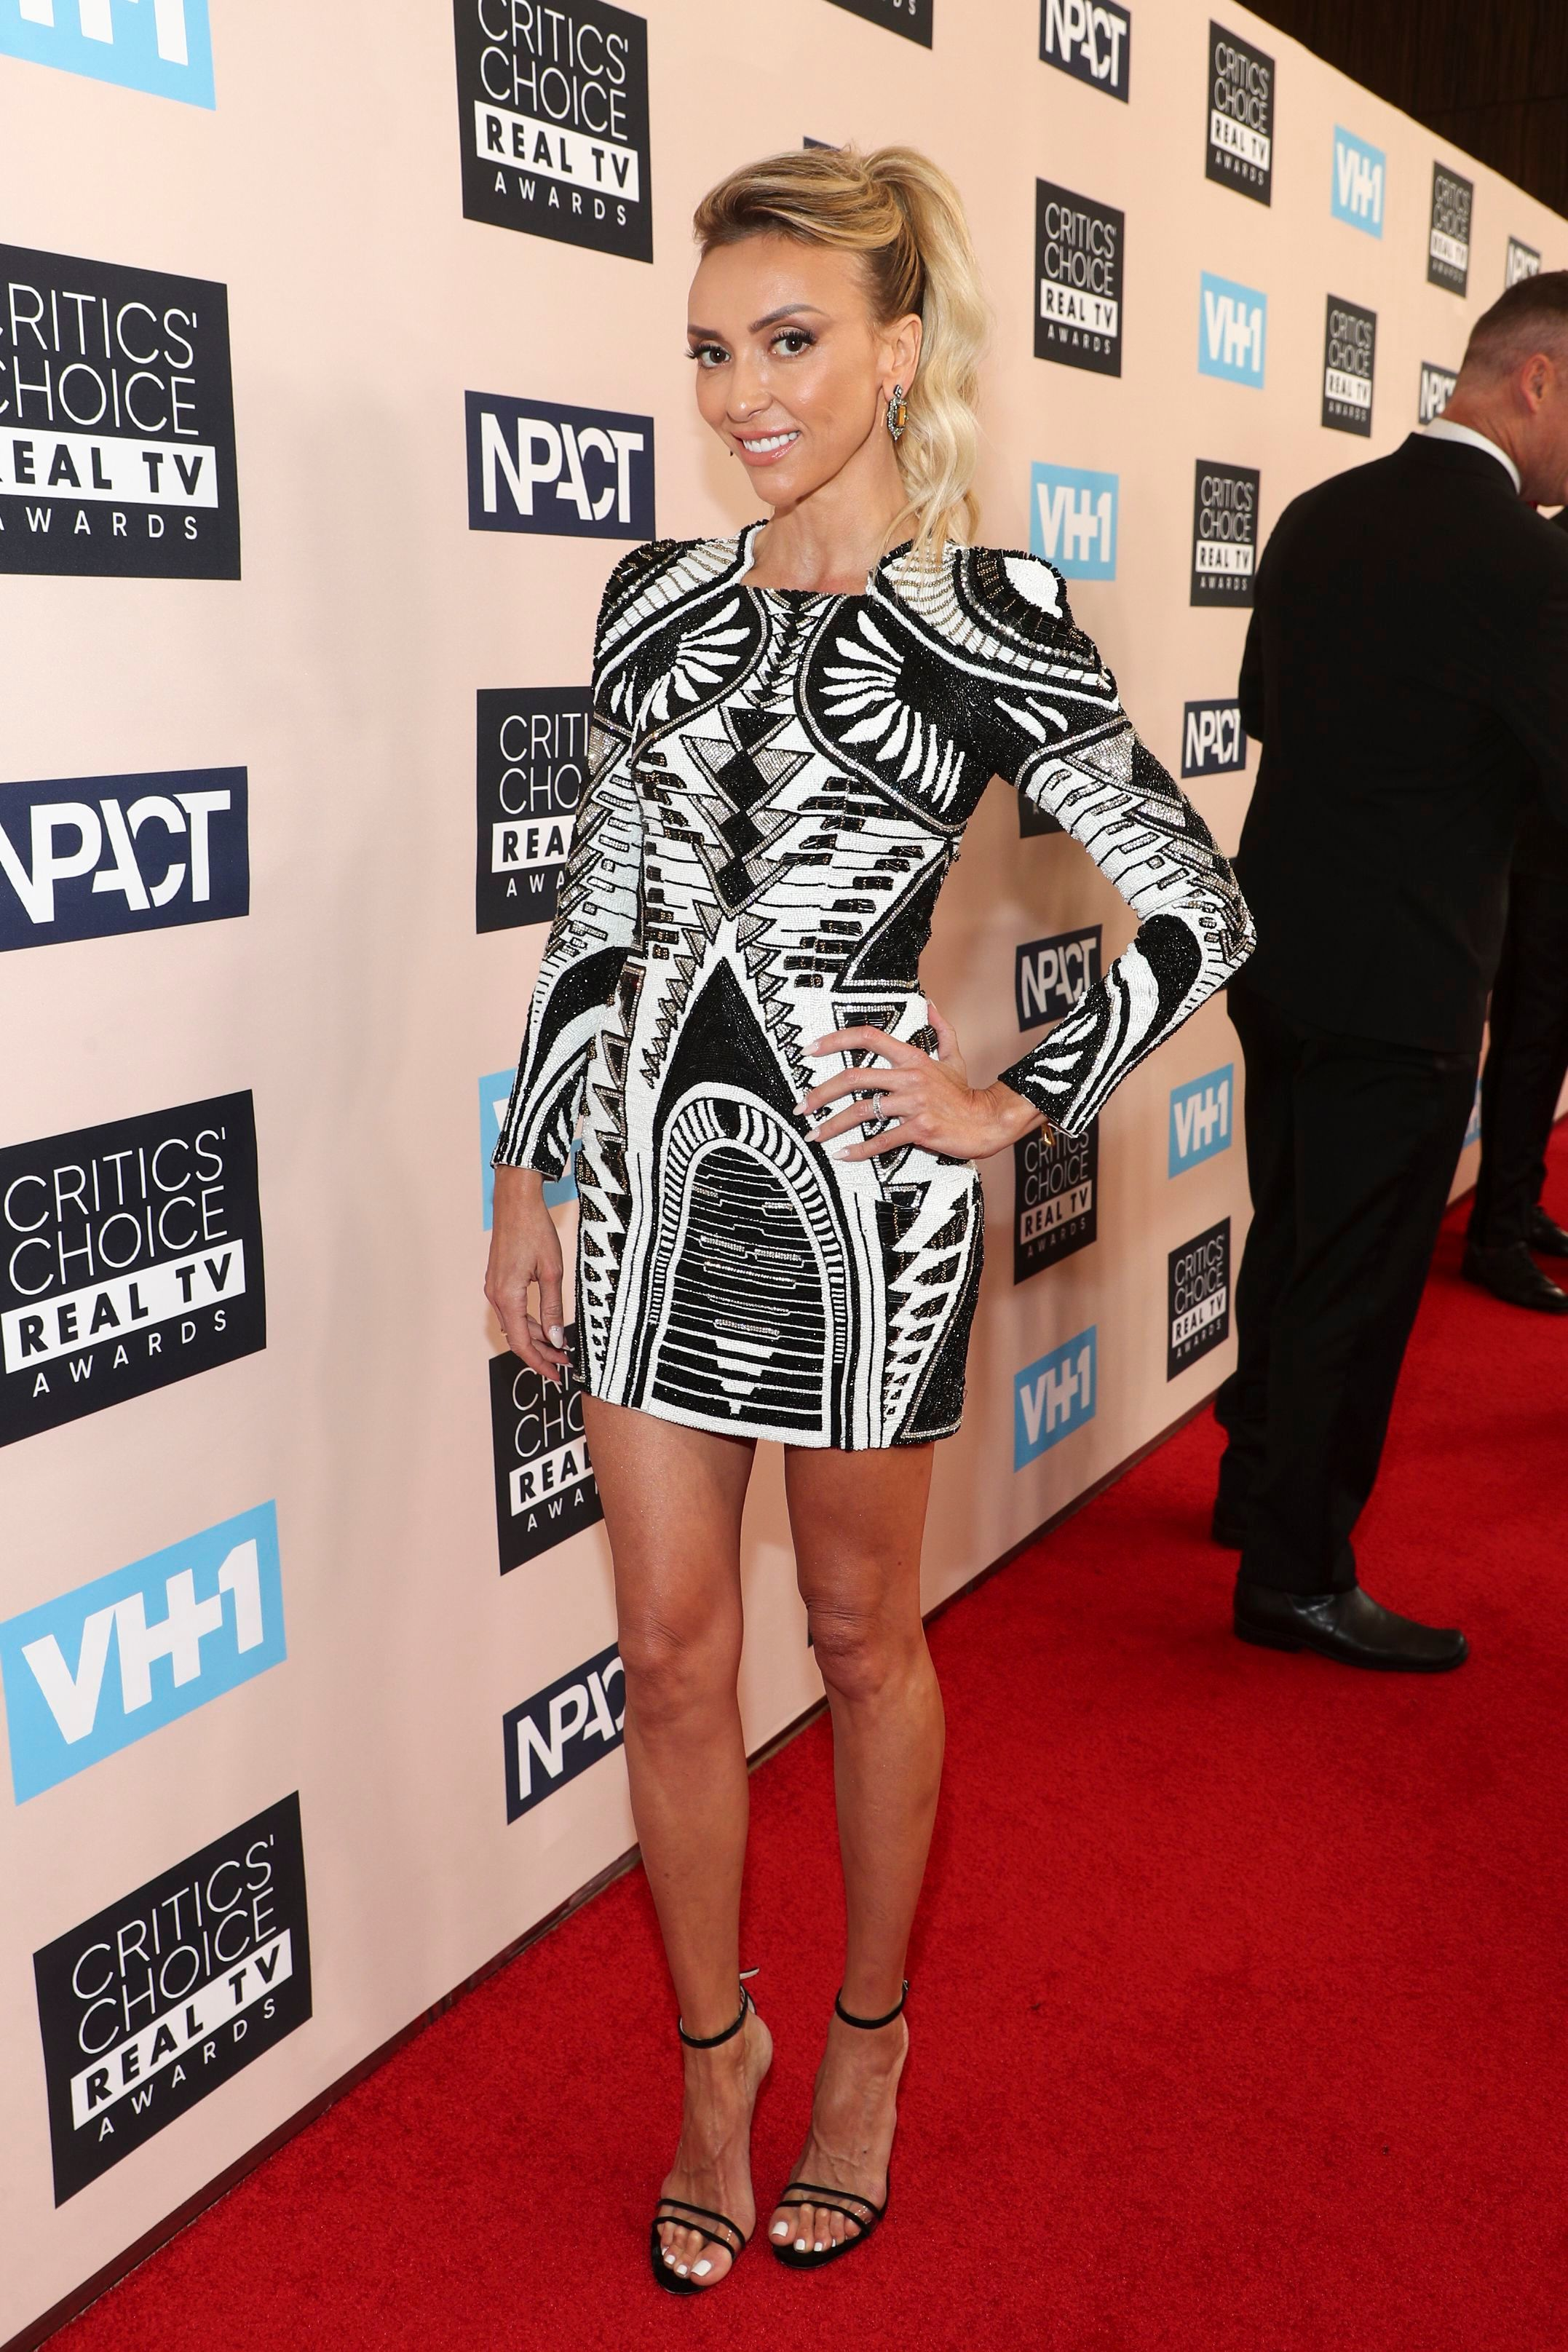 Giuliana Rancic attends the Critics' Choice Real TV Awards in Los Angeles on June 2, 2019.